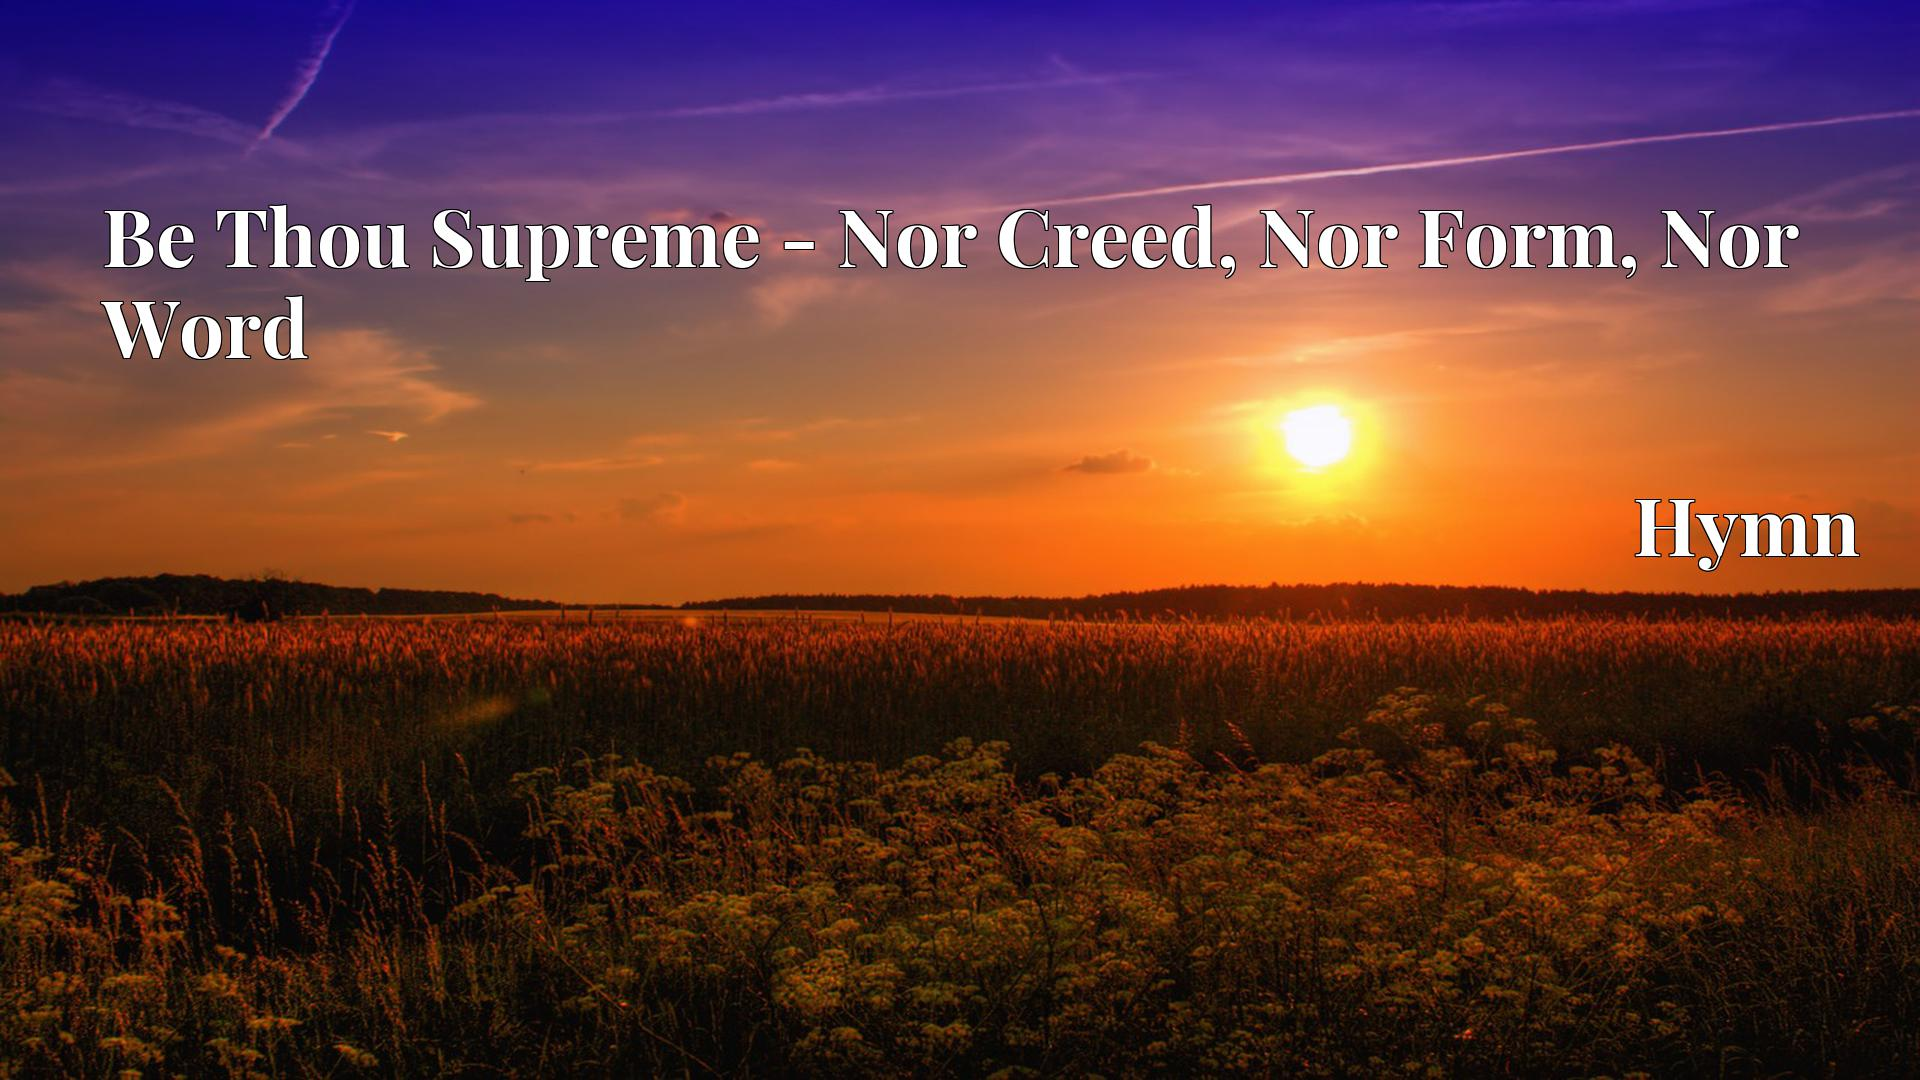 Be Thou Supreme - Nor Creed, Nor Form, Nor Word - Hymn